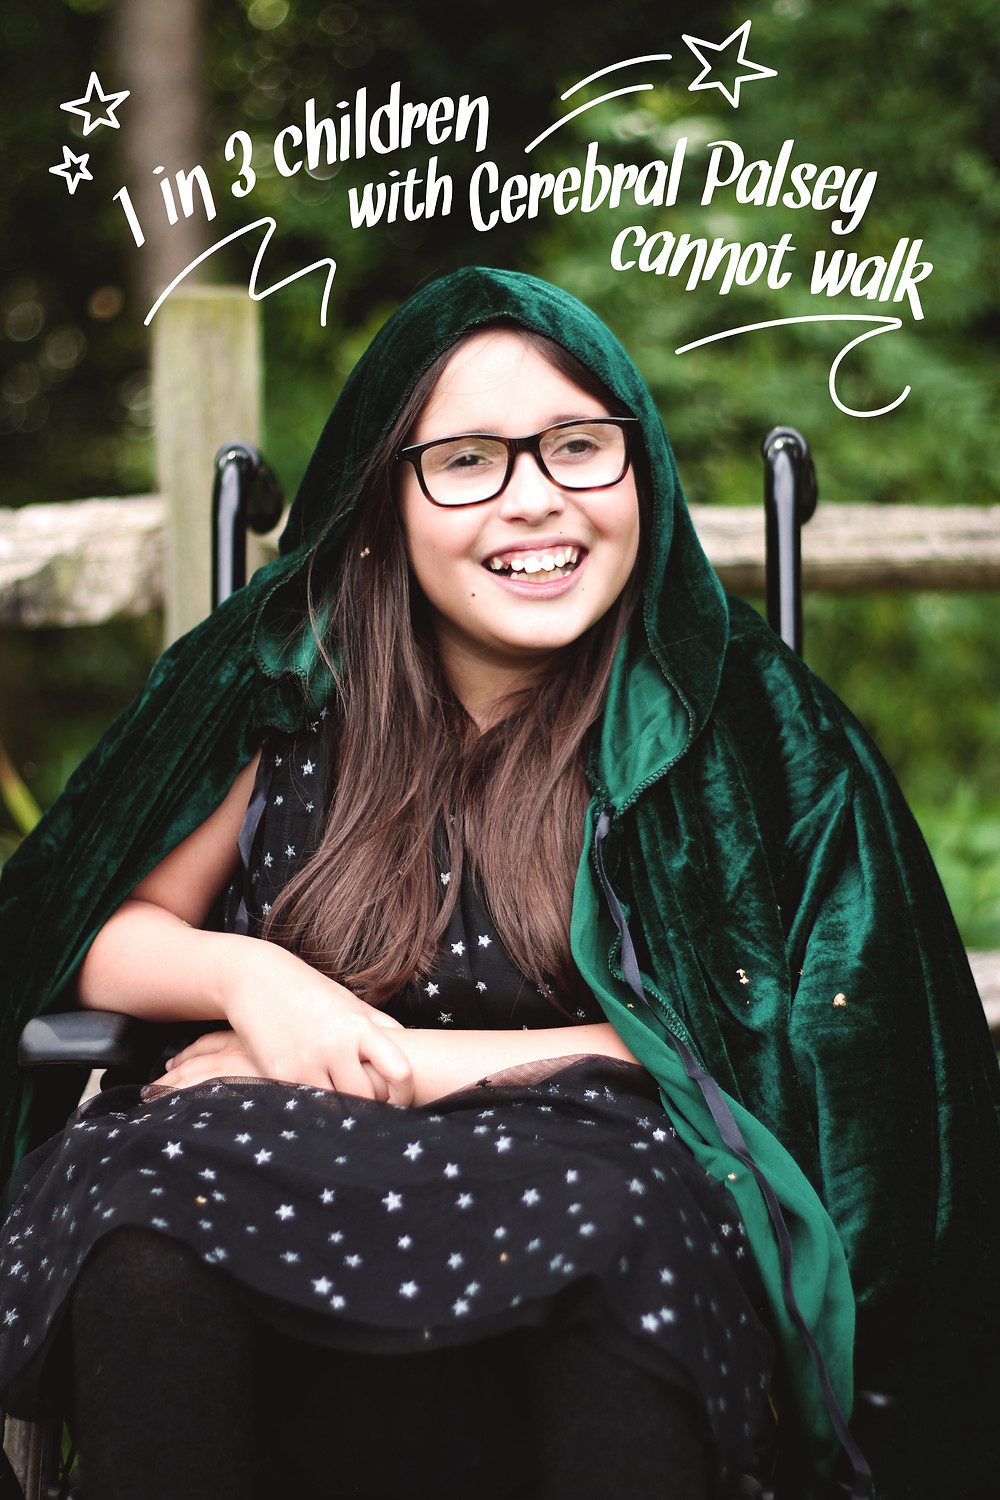 Disabled model photod for world cerebrl palsy awareness day campaign. disability awareness. Zebedee Management differently disabled model agency.